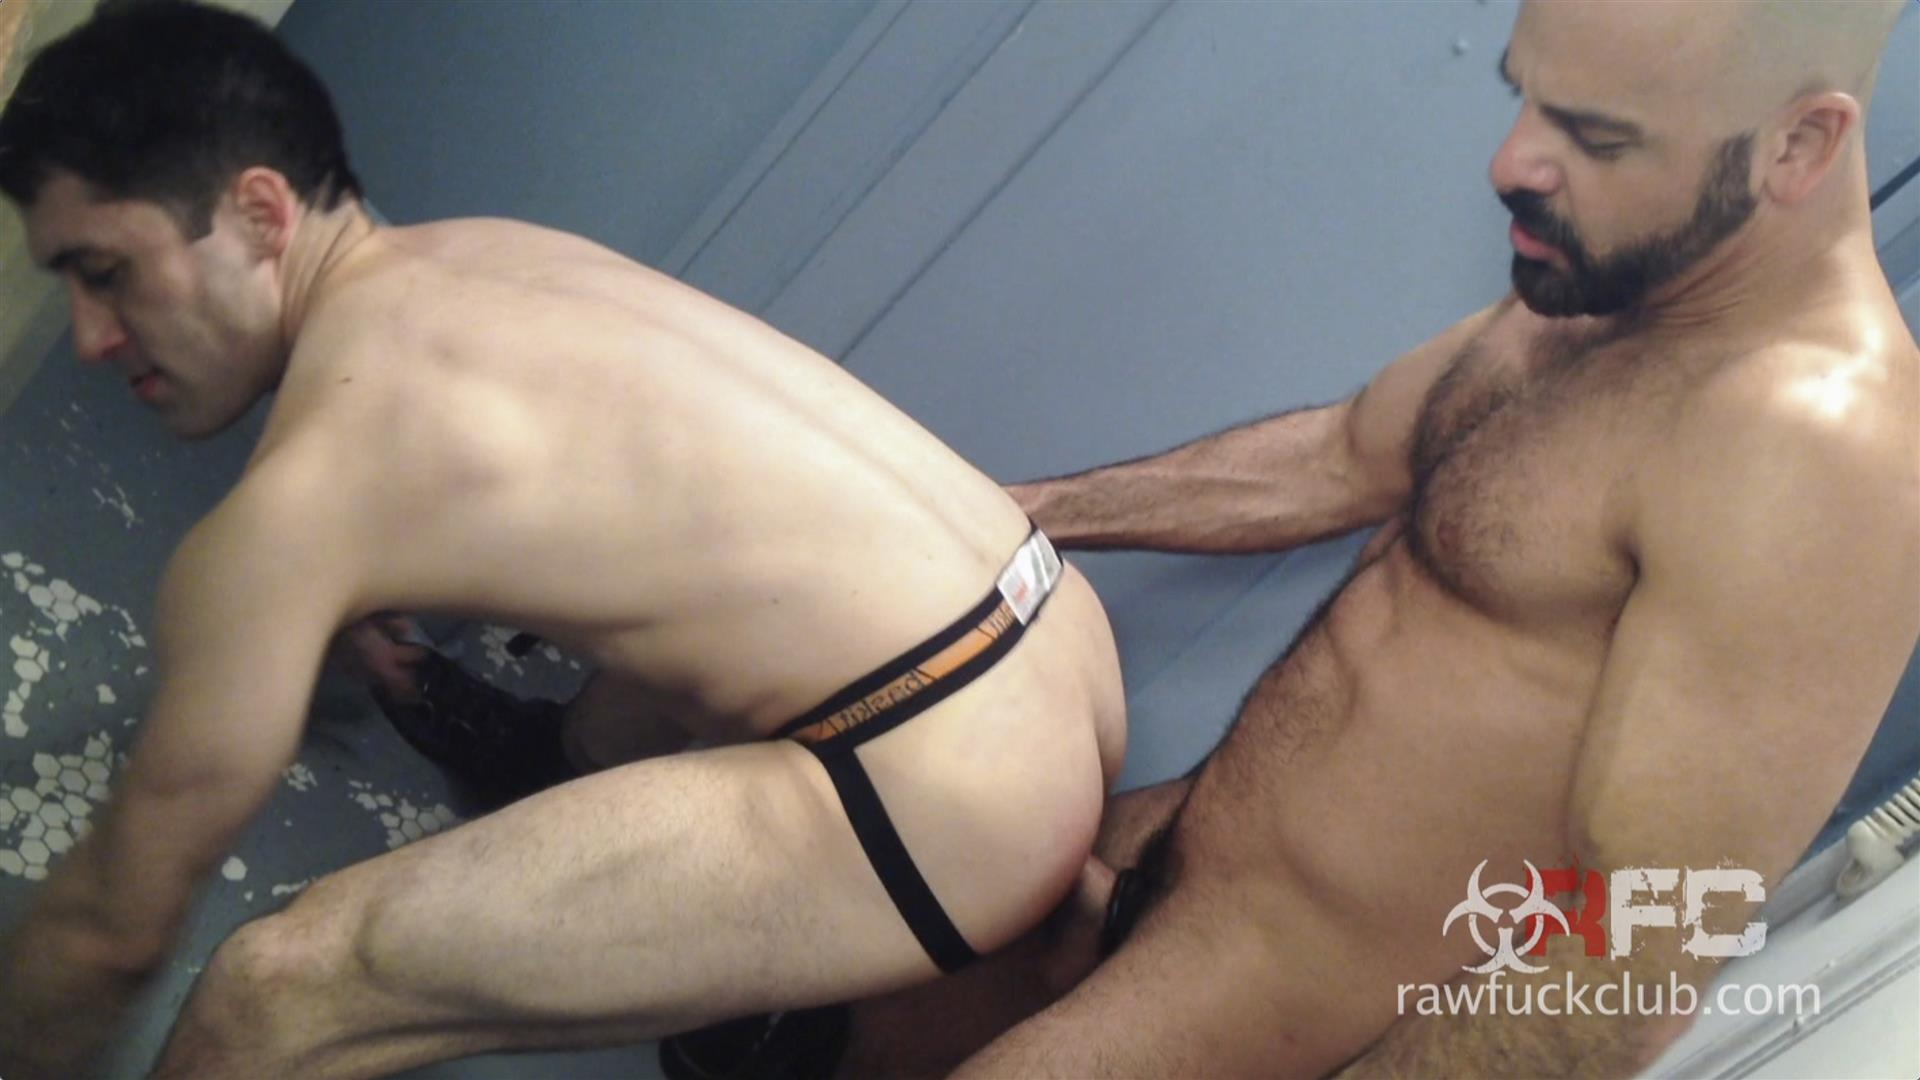 Raw-Fuck-Club-Adam-Russo-and-Kyle-Ferris-Anonymous-Bareback-Sex-Amateur-Gay-Porn-6 Adam Russo Barebacking A Stranger In A Dirty Bar Bathroom